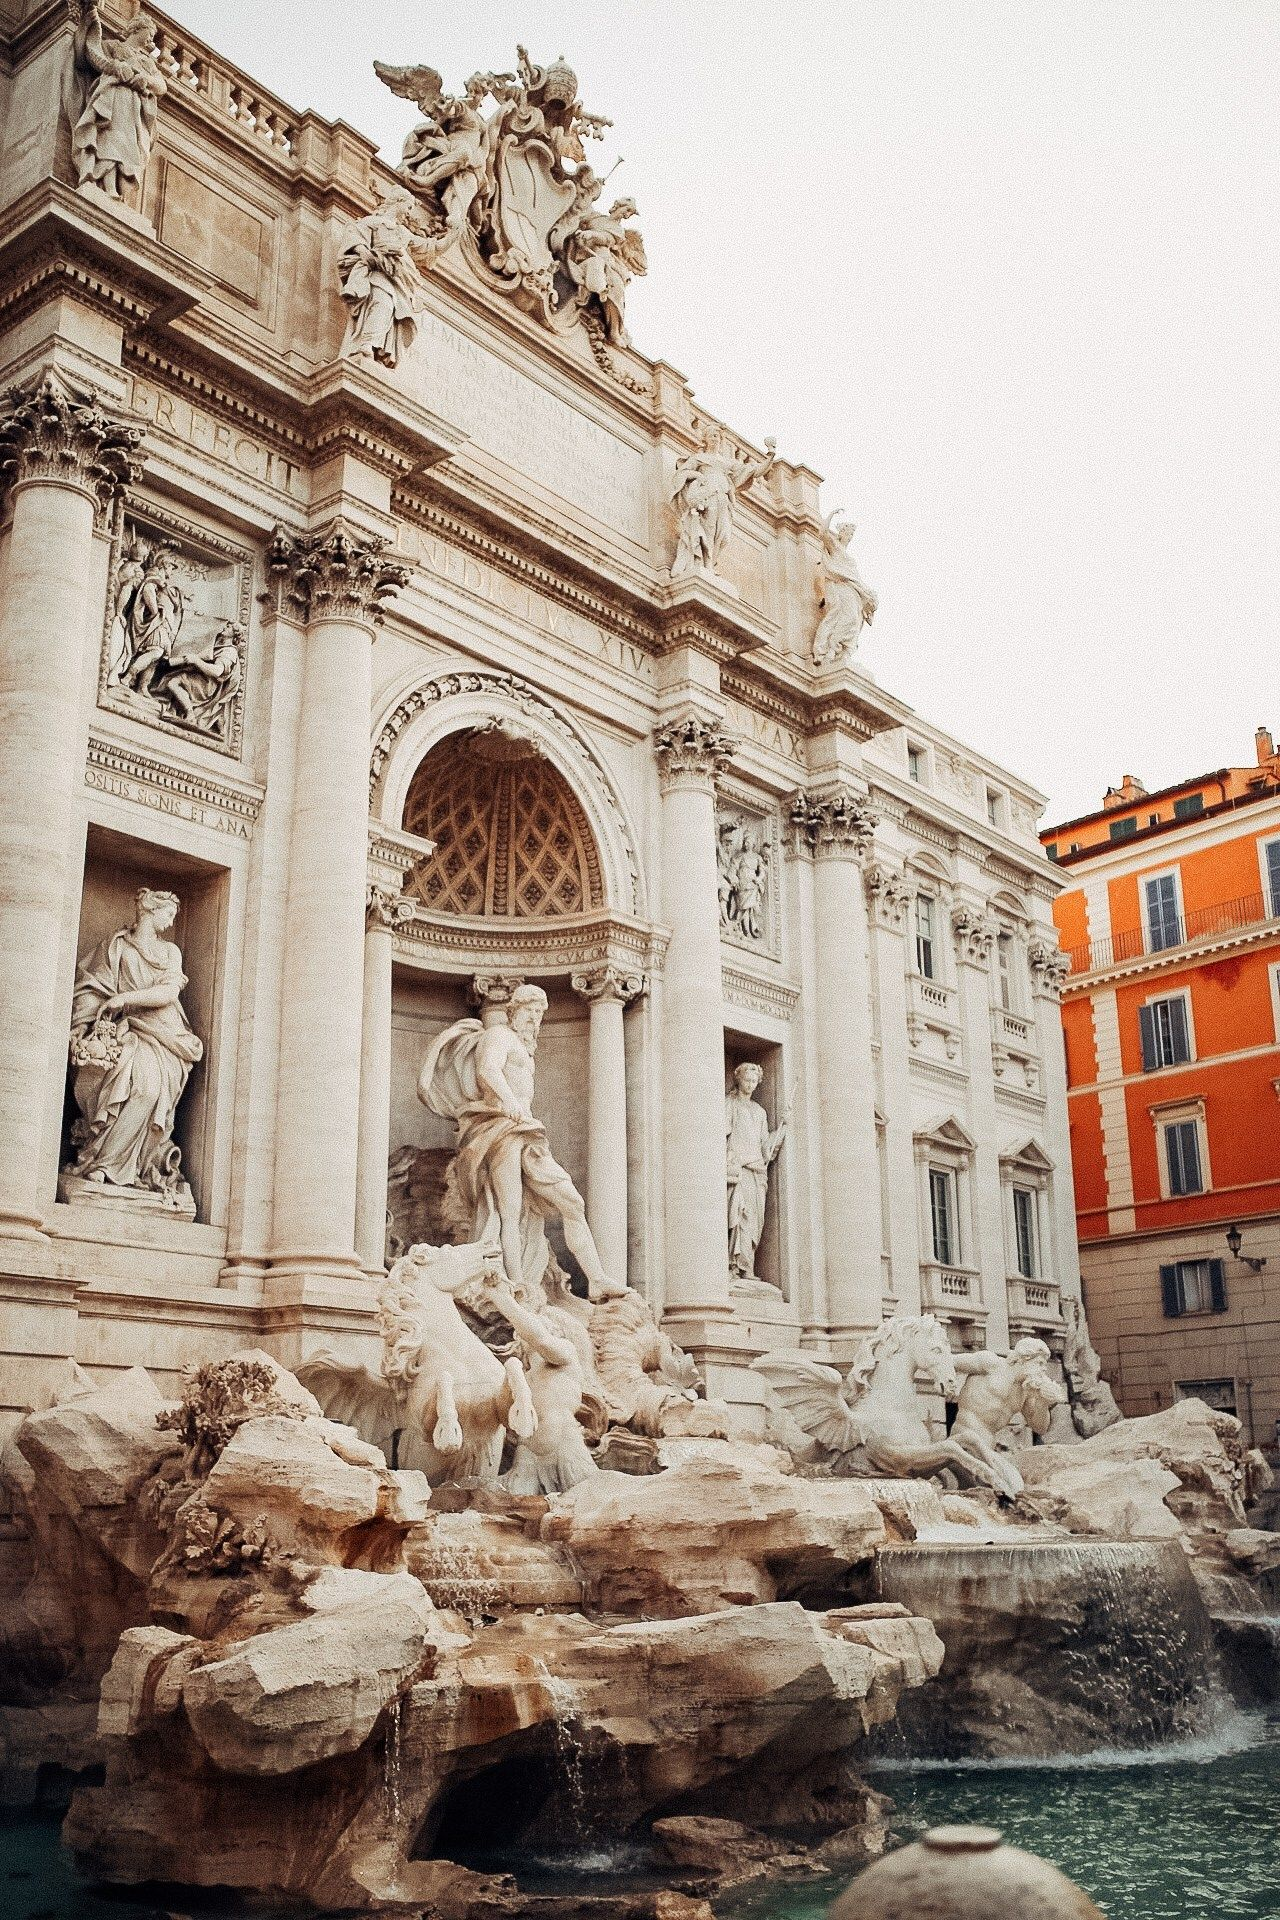 Destination Guide Rome Explore The Eternal City With My Rome Travel Guide Wander The Streets Of Trastevere In 2020 Rome Travel Guide Italy Travel Guide Rome Travel